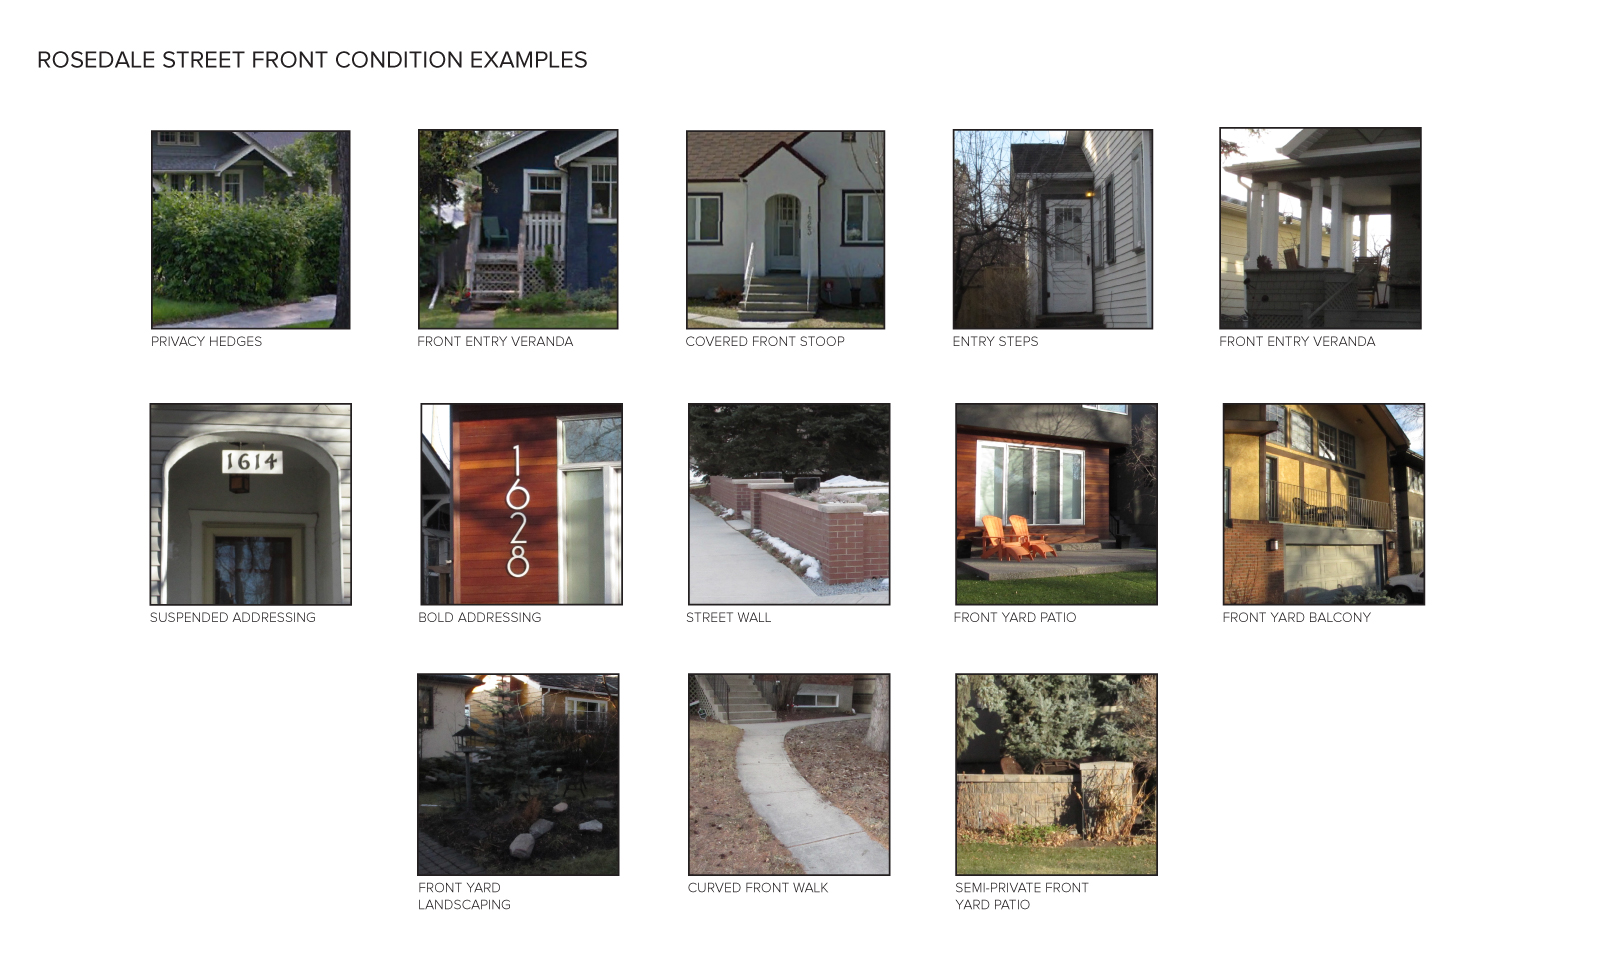 Images of street front (edge) elements such as hedges, verandas, steps, patios and landscaping.